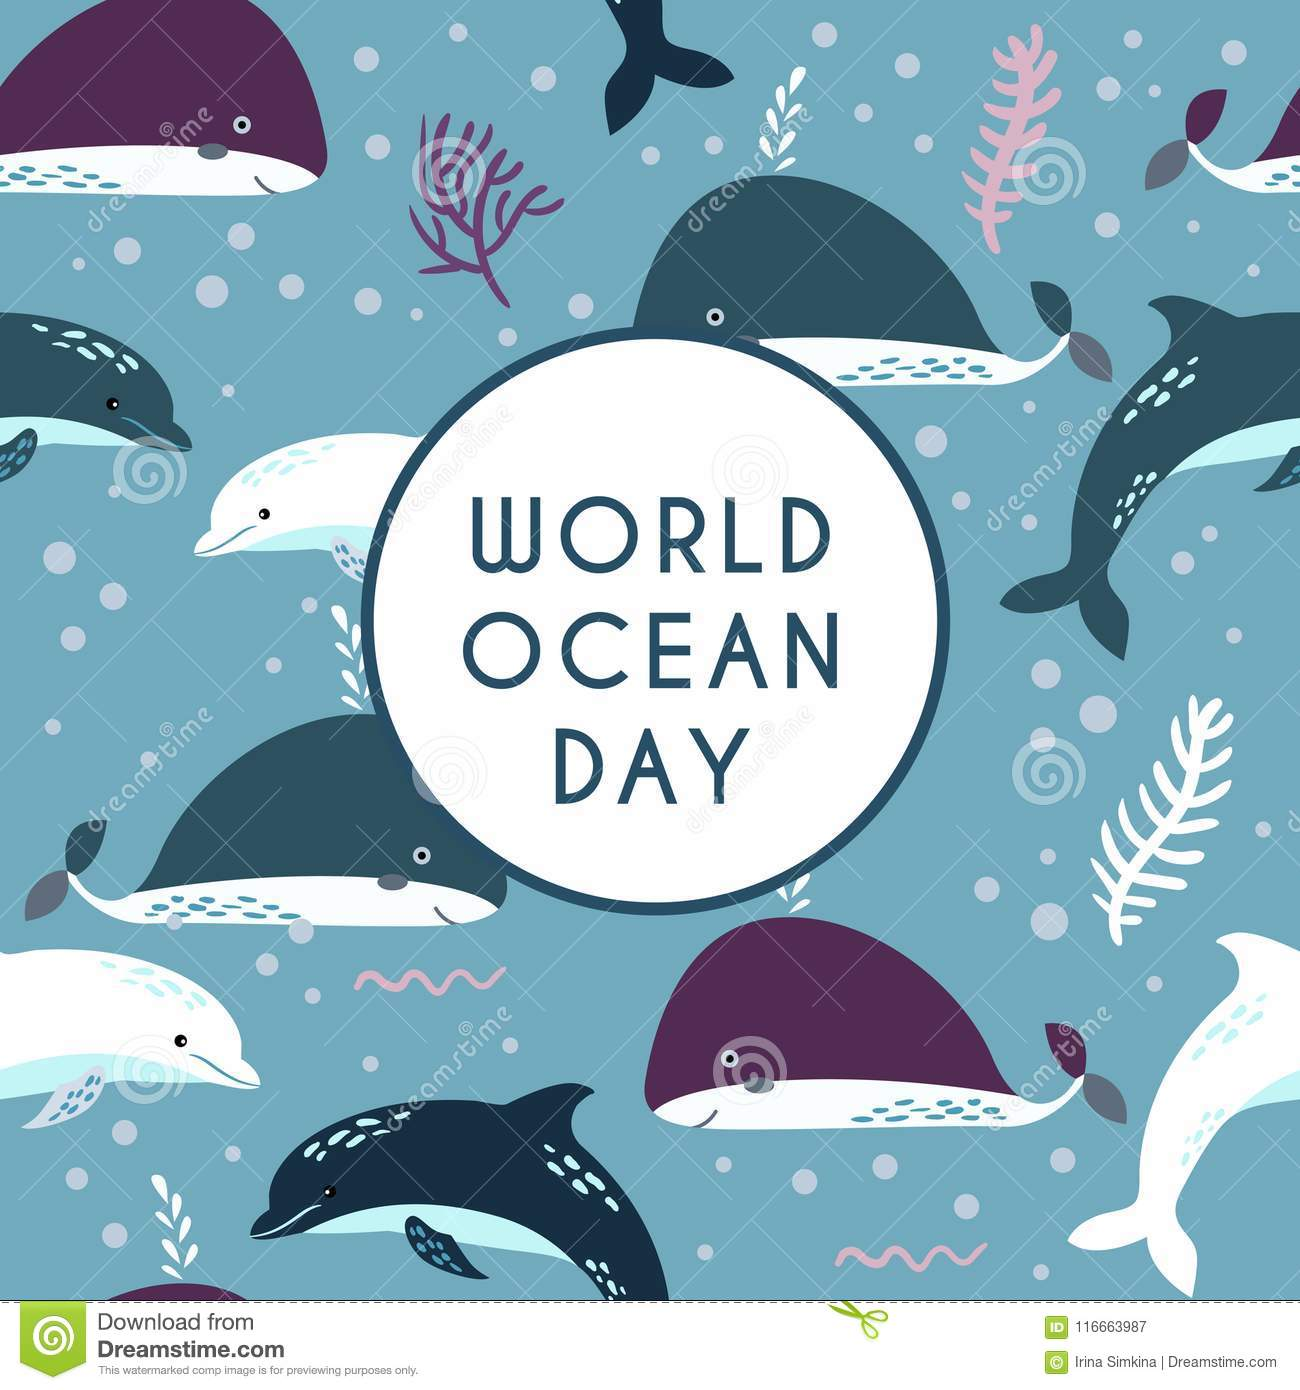 World ocean day. Element of image furnished by NASA